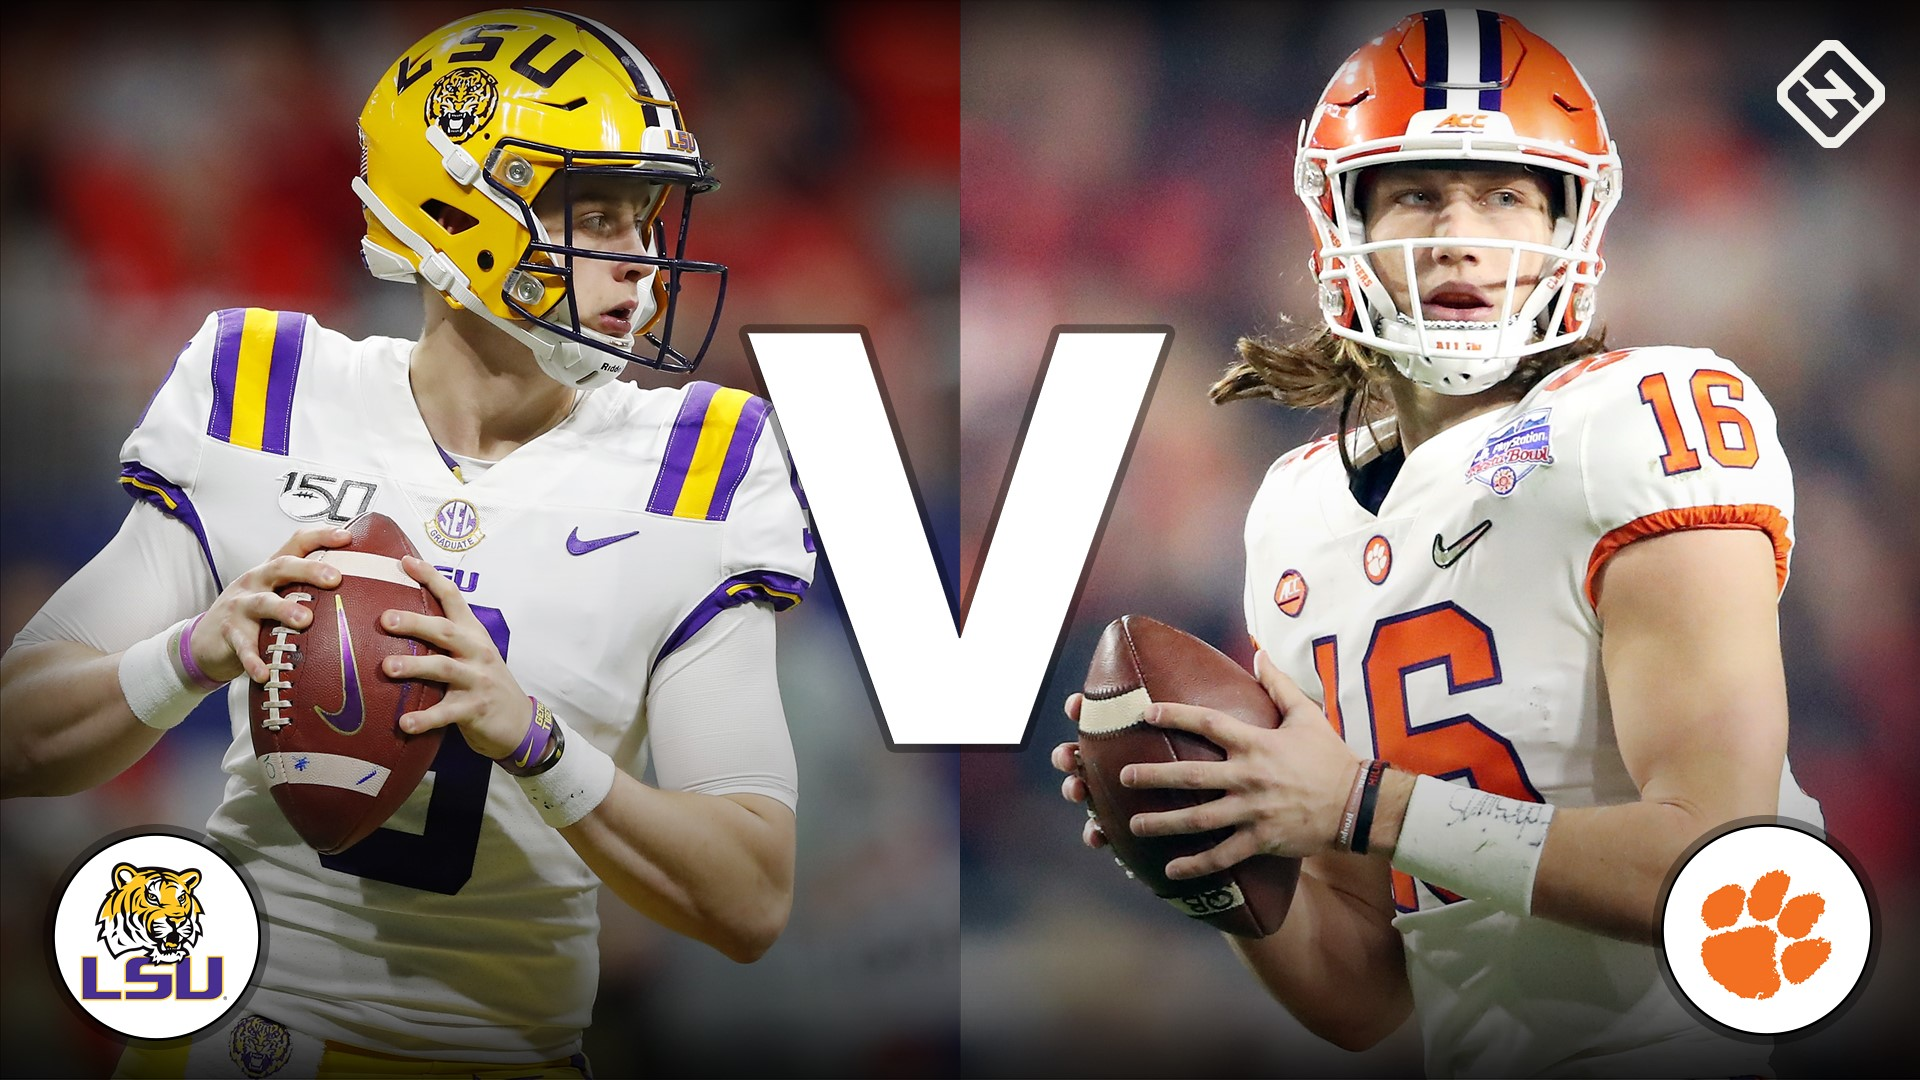 What Channel Is Lsu Vs Clemson On Tonight Time Tv Schedule For 2020 College Football Championship Sporting News